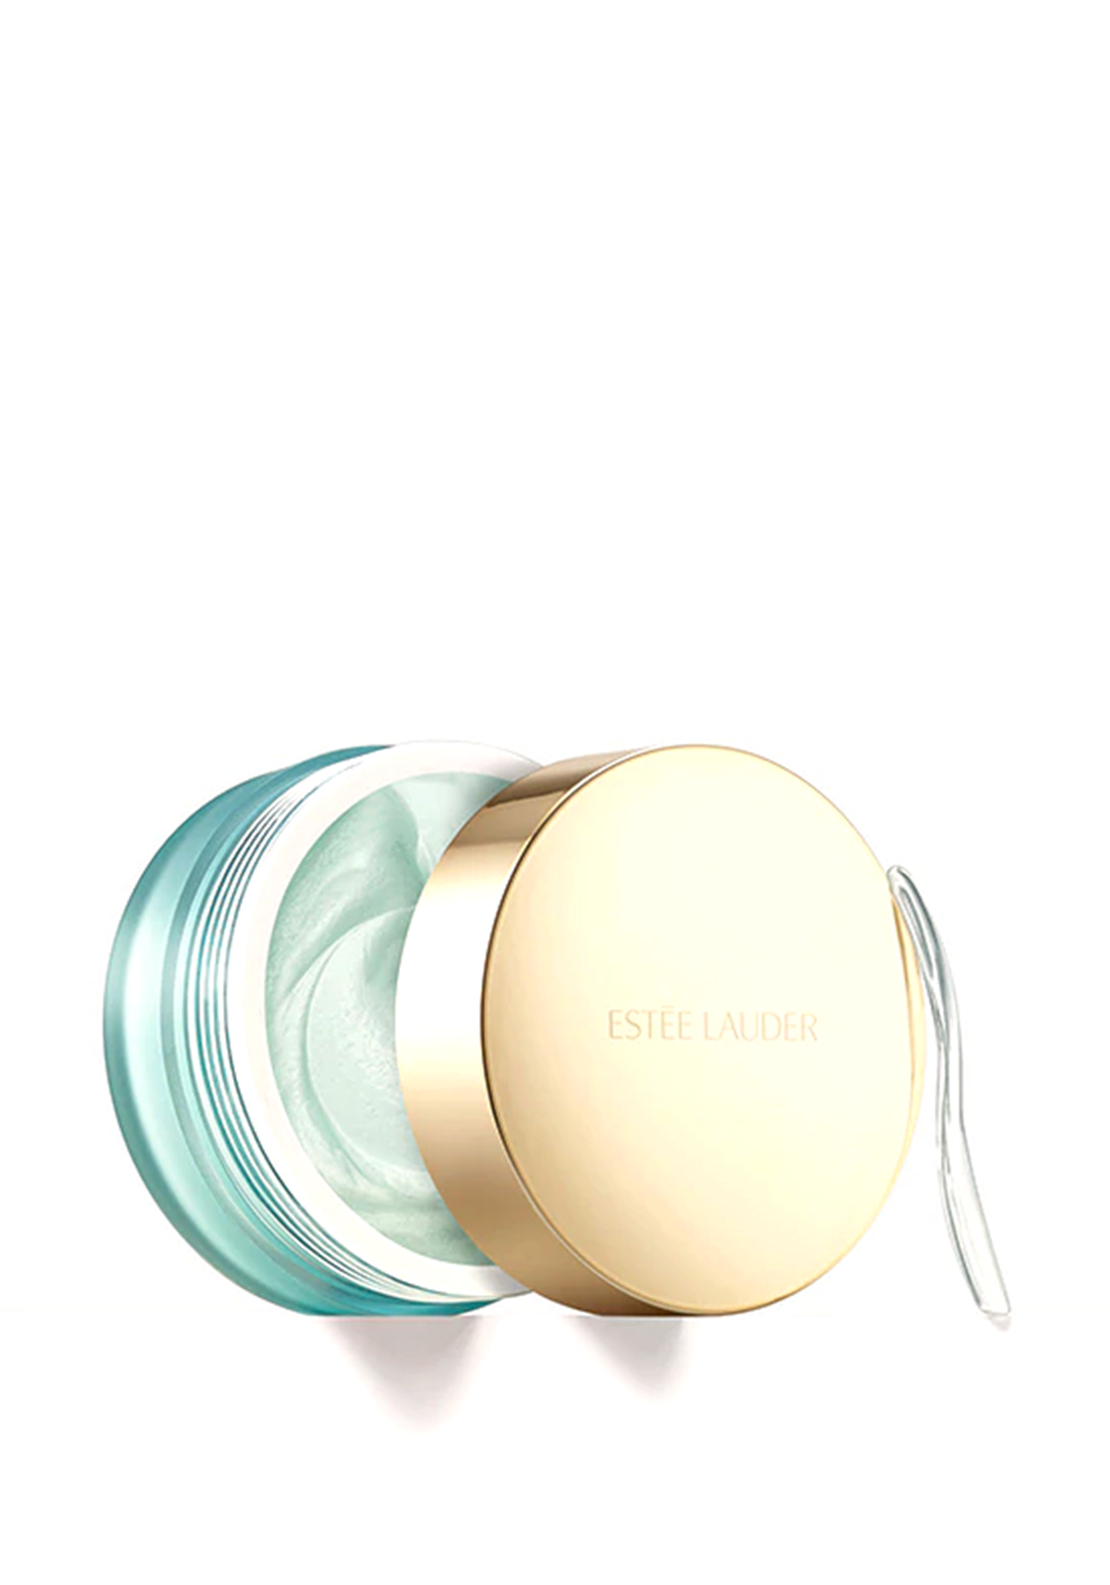 Estee Lauder Clear Difference Purifying Exfoliating Mask, 75ml